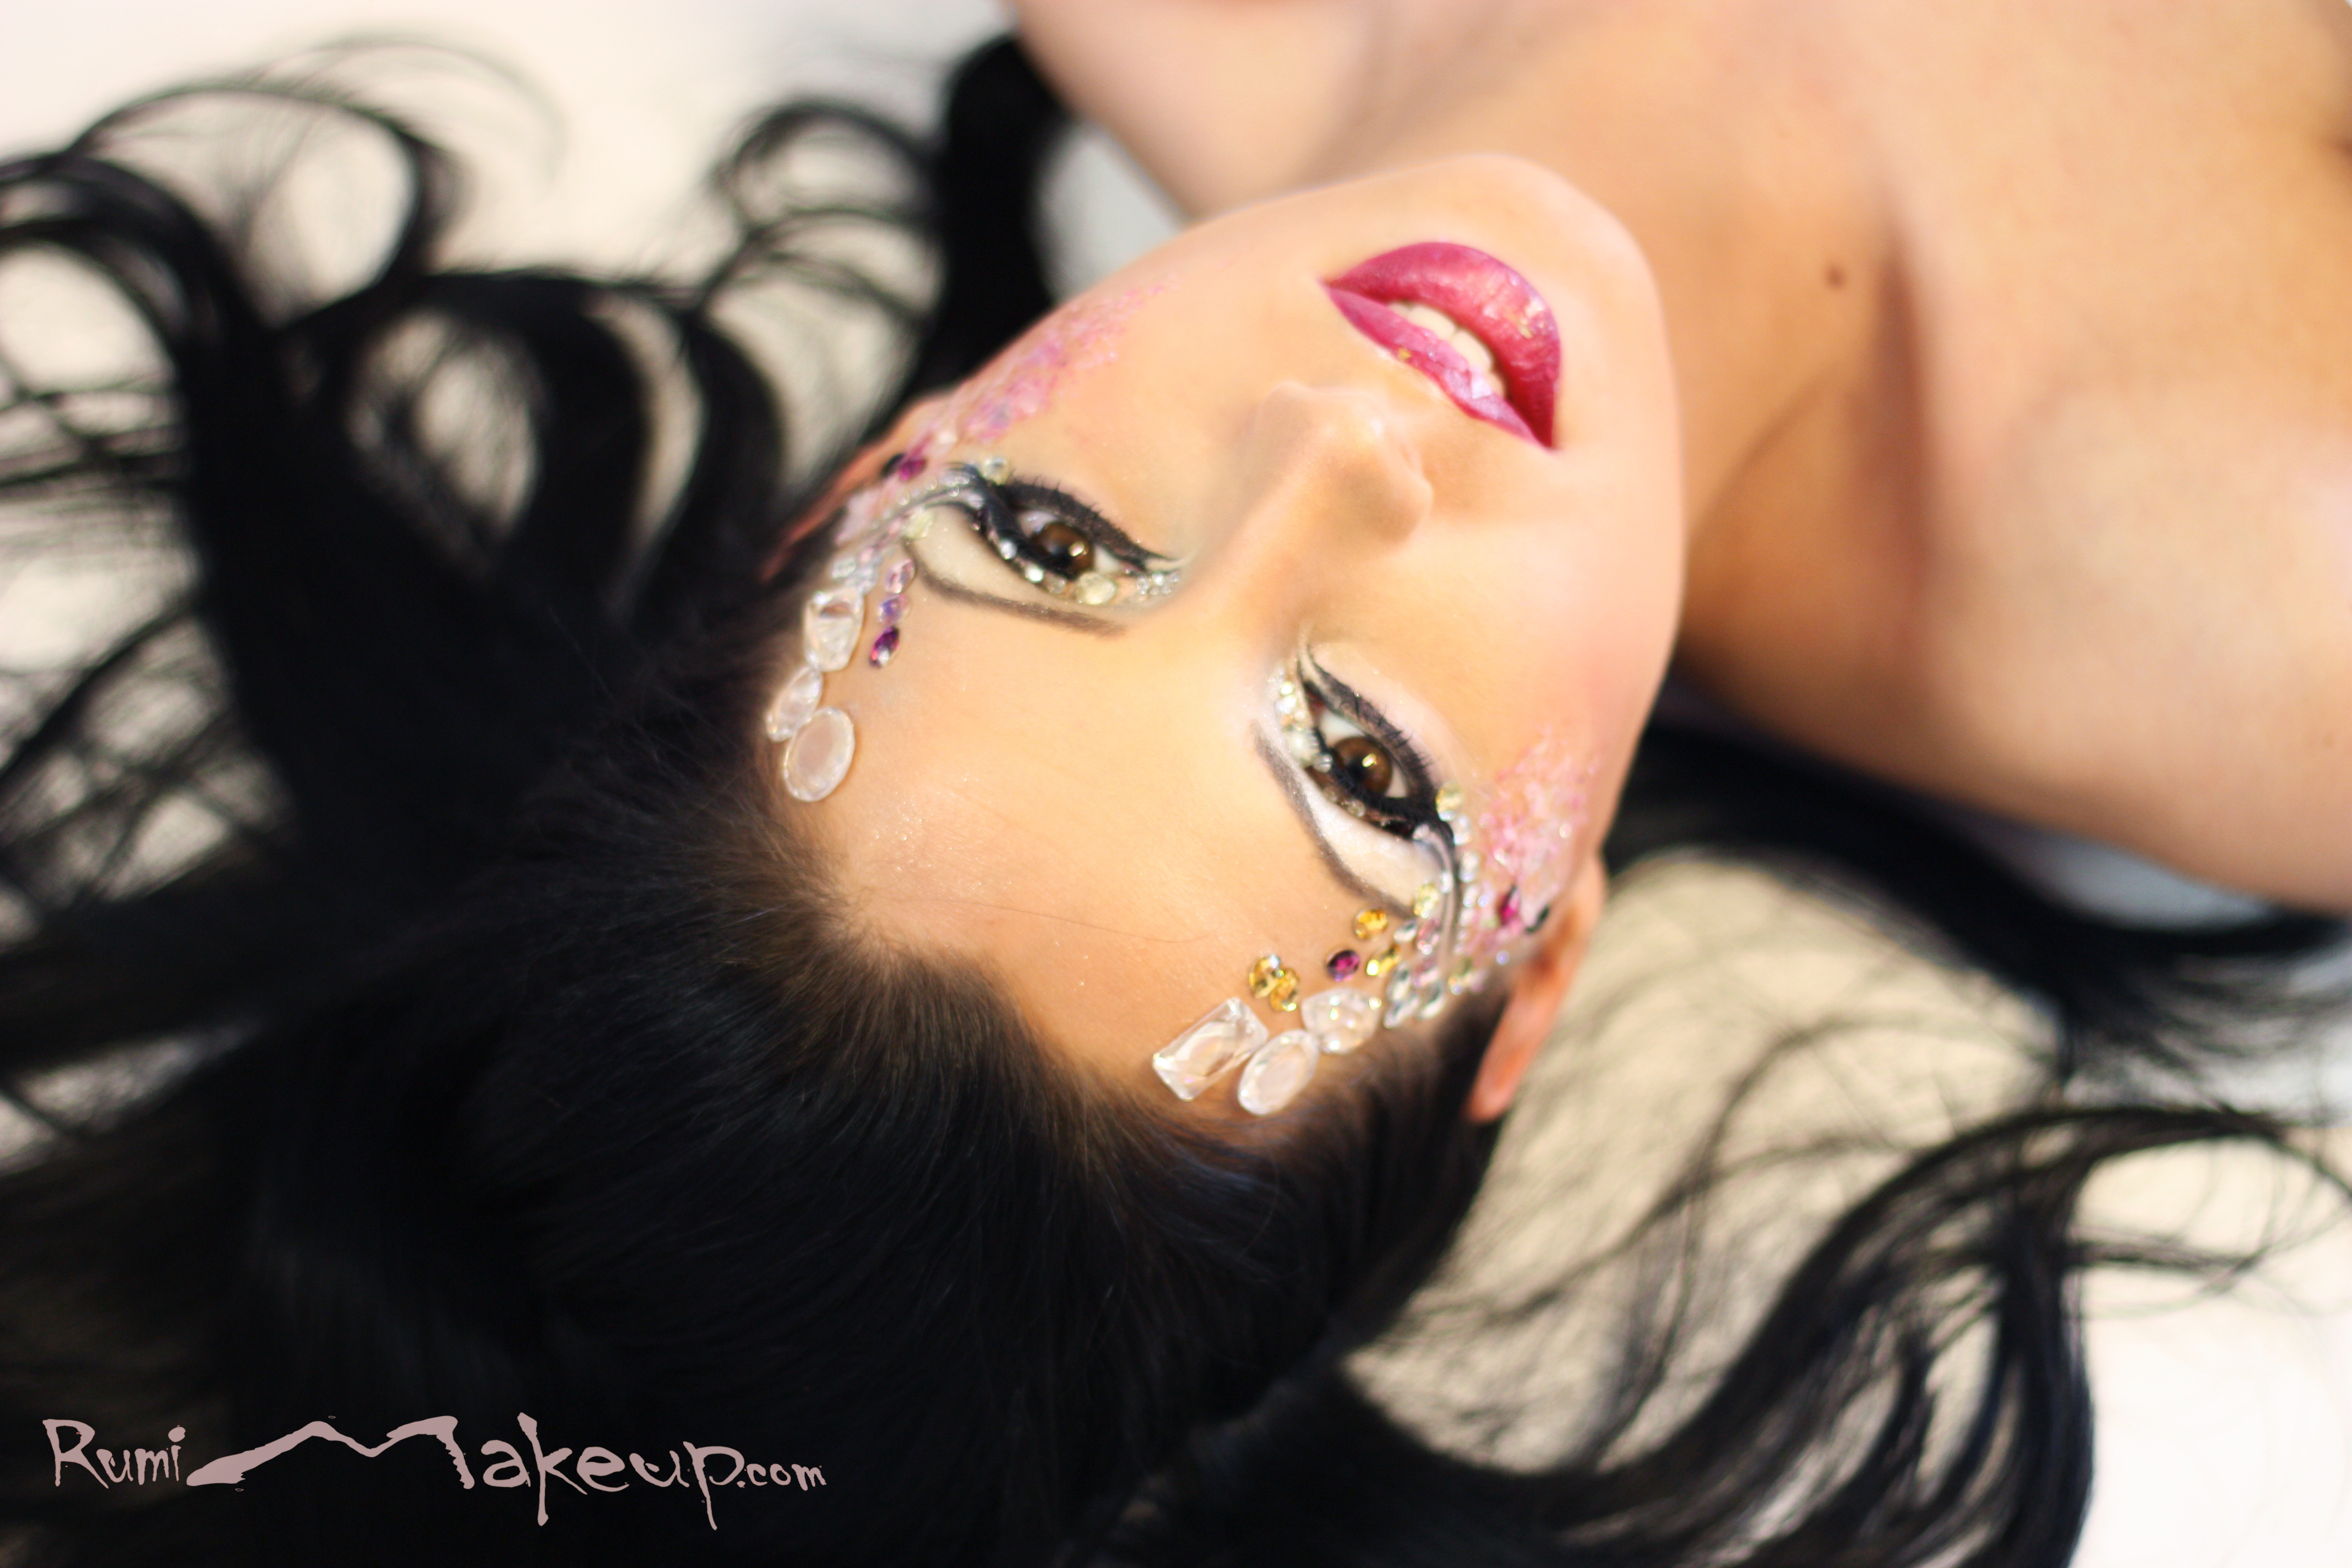 ART Makeup with decorations